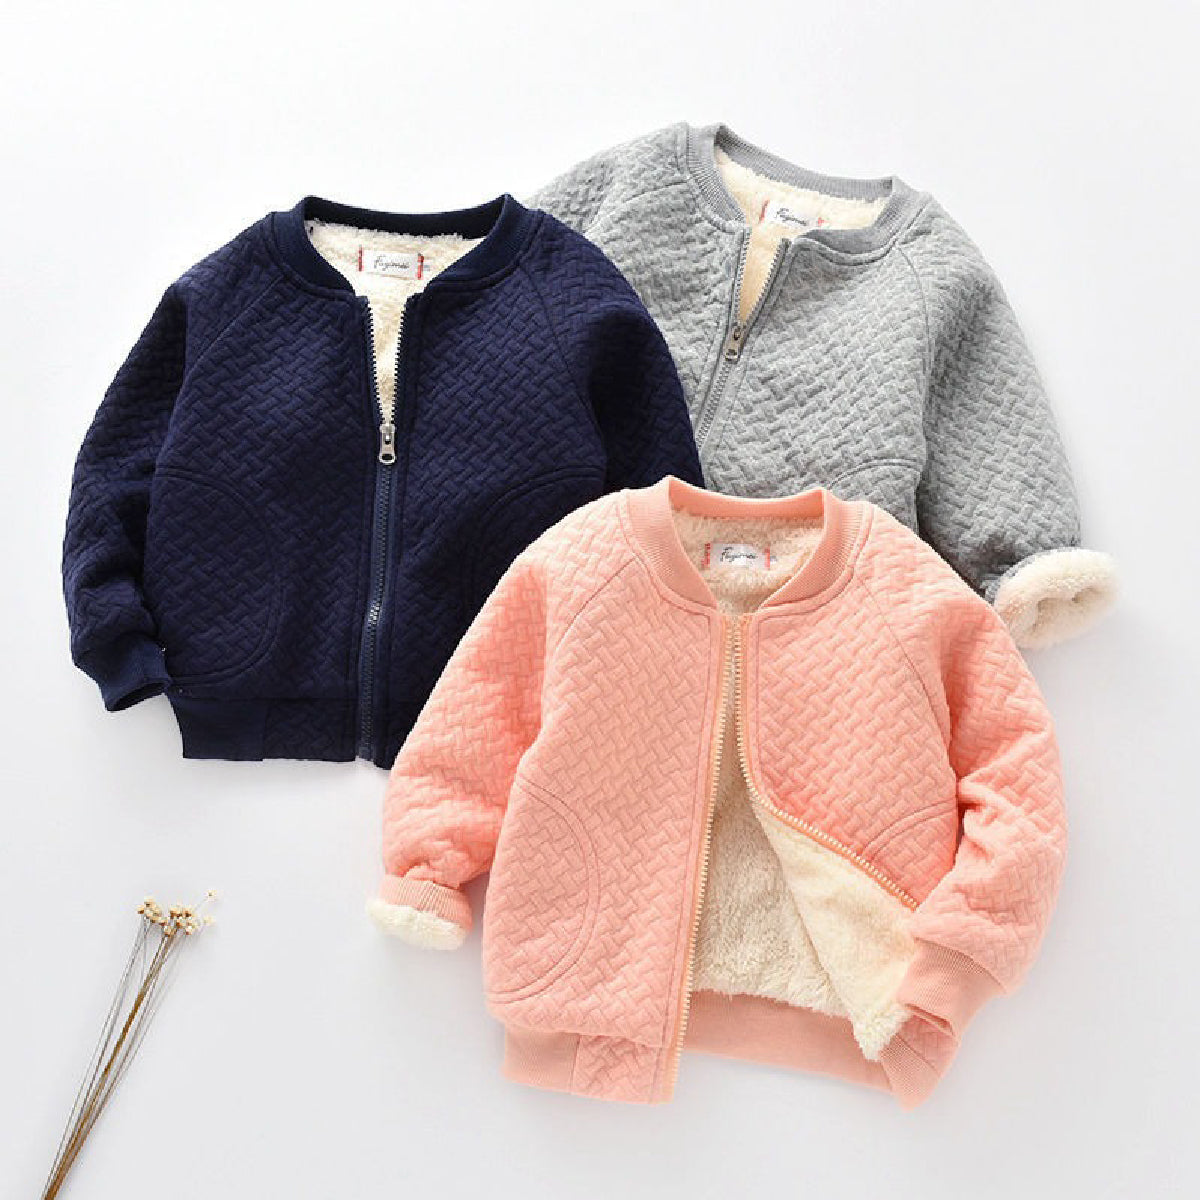 Baby Zone Cozy Cotton Jacket ™